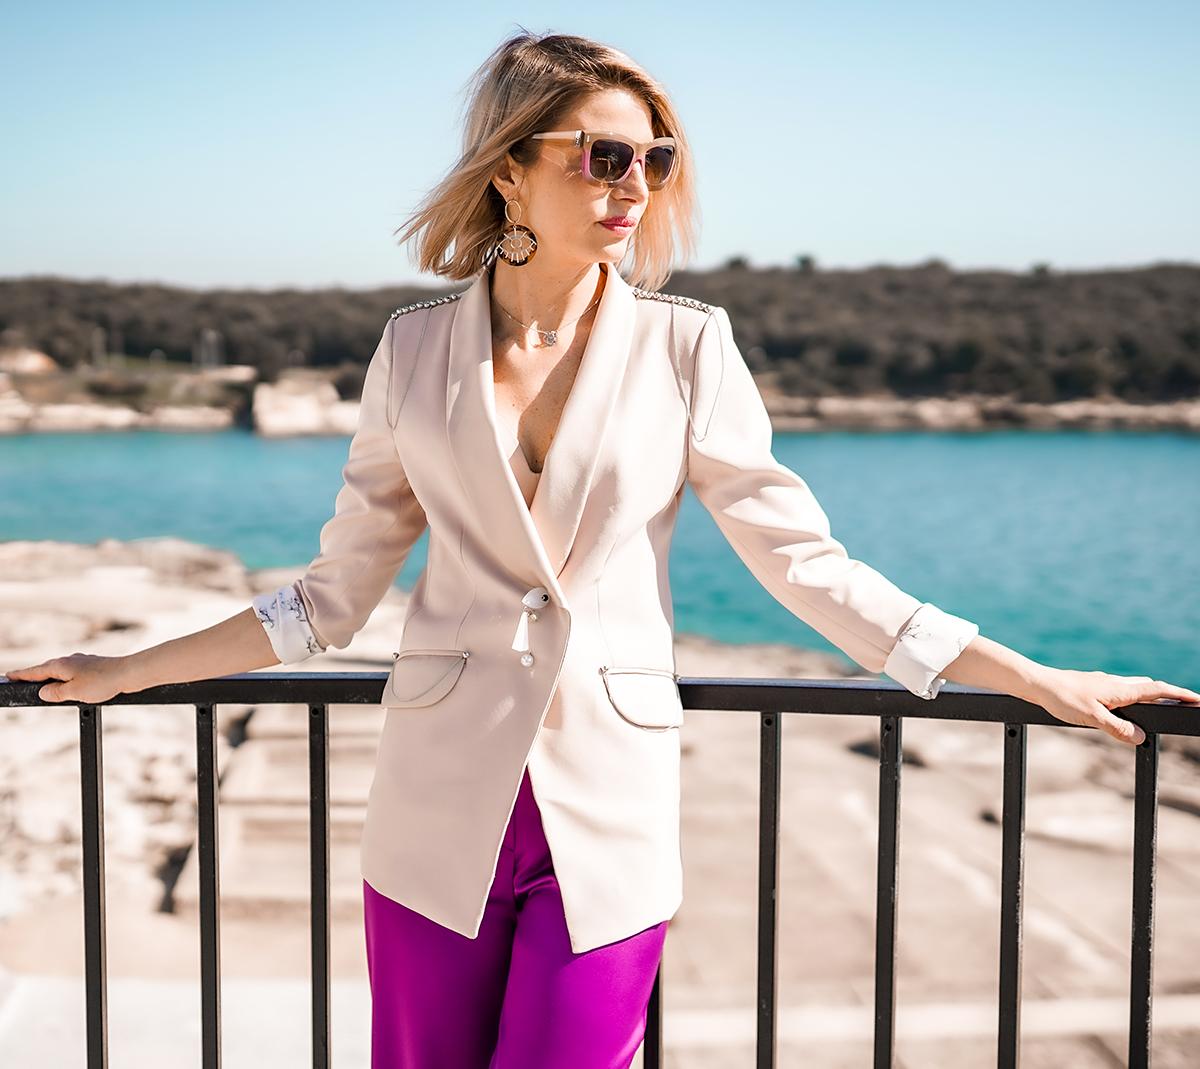 SPRING BUSINESS LOOK IN COLORS